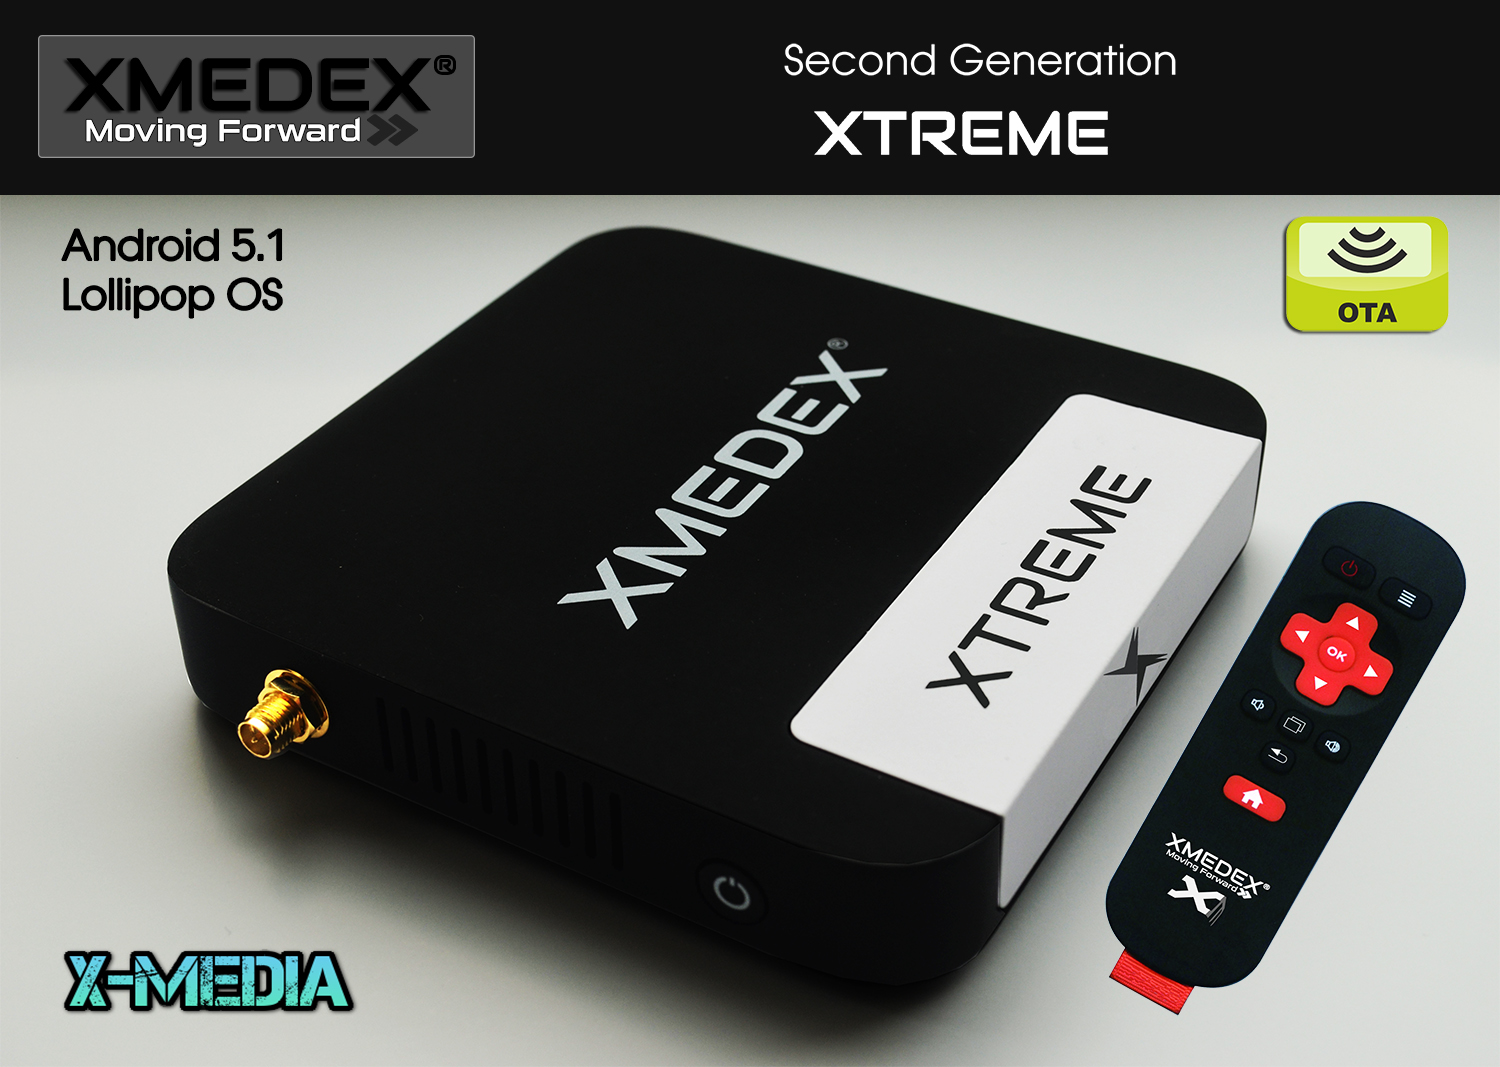 xtreme best kodi box australia review, xmedex xtreme rk3288 16g 2g